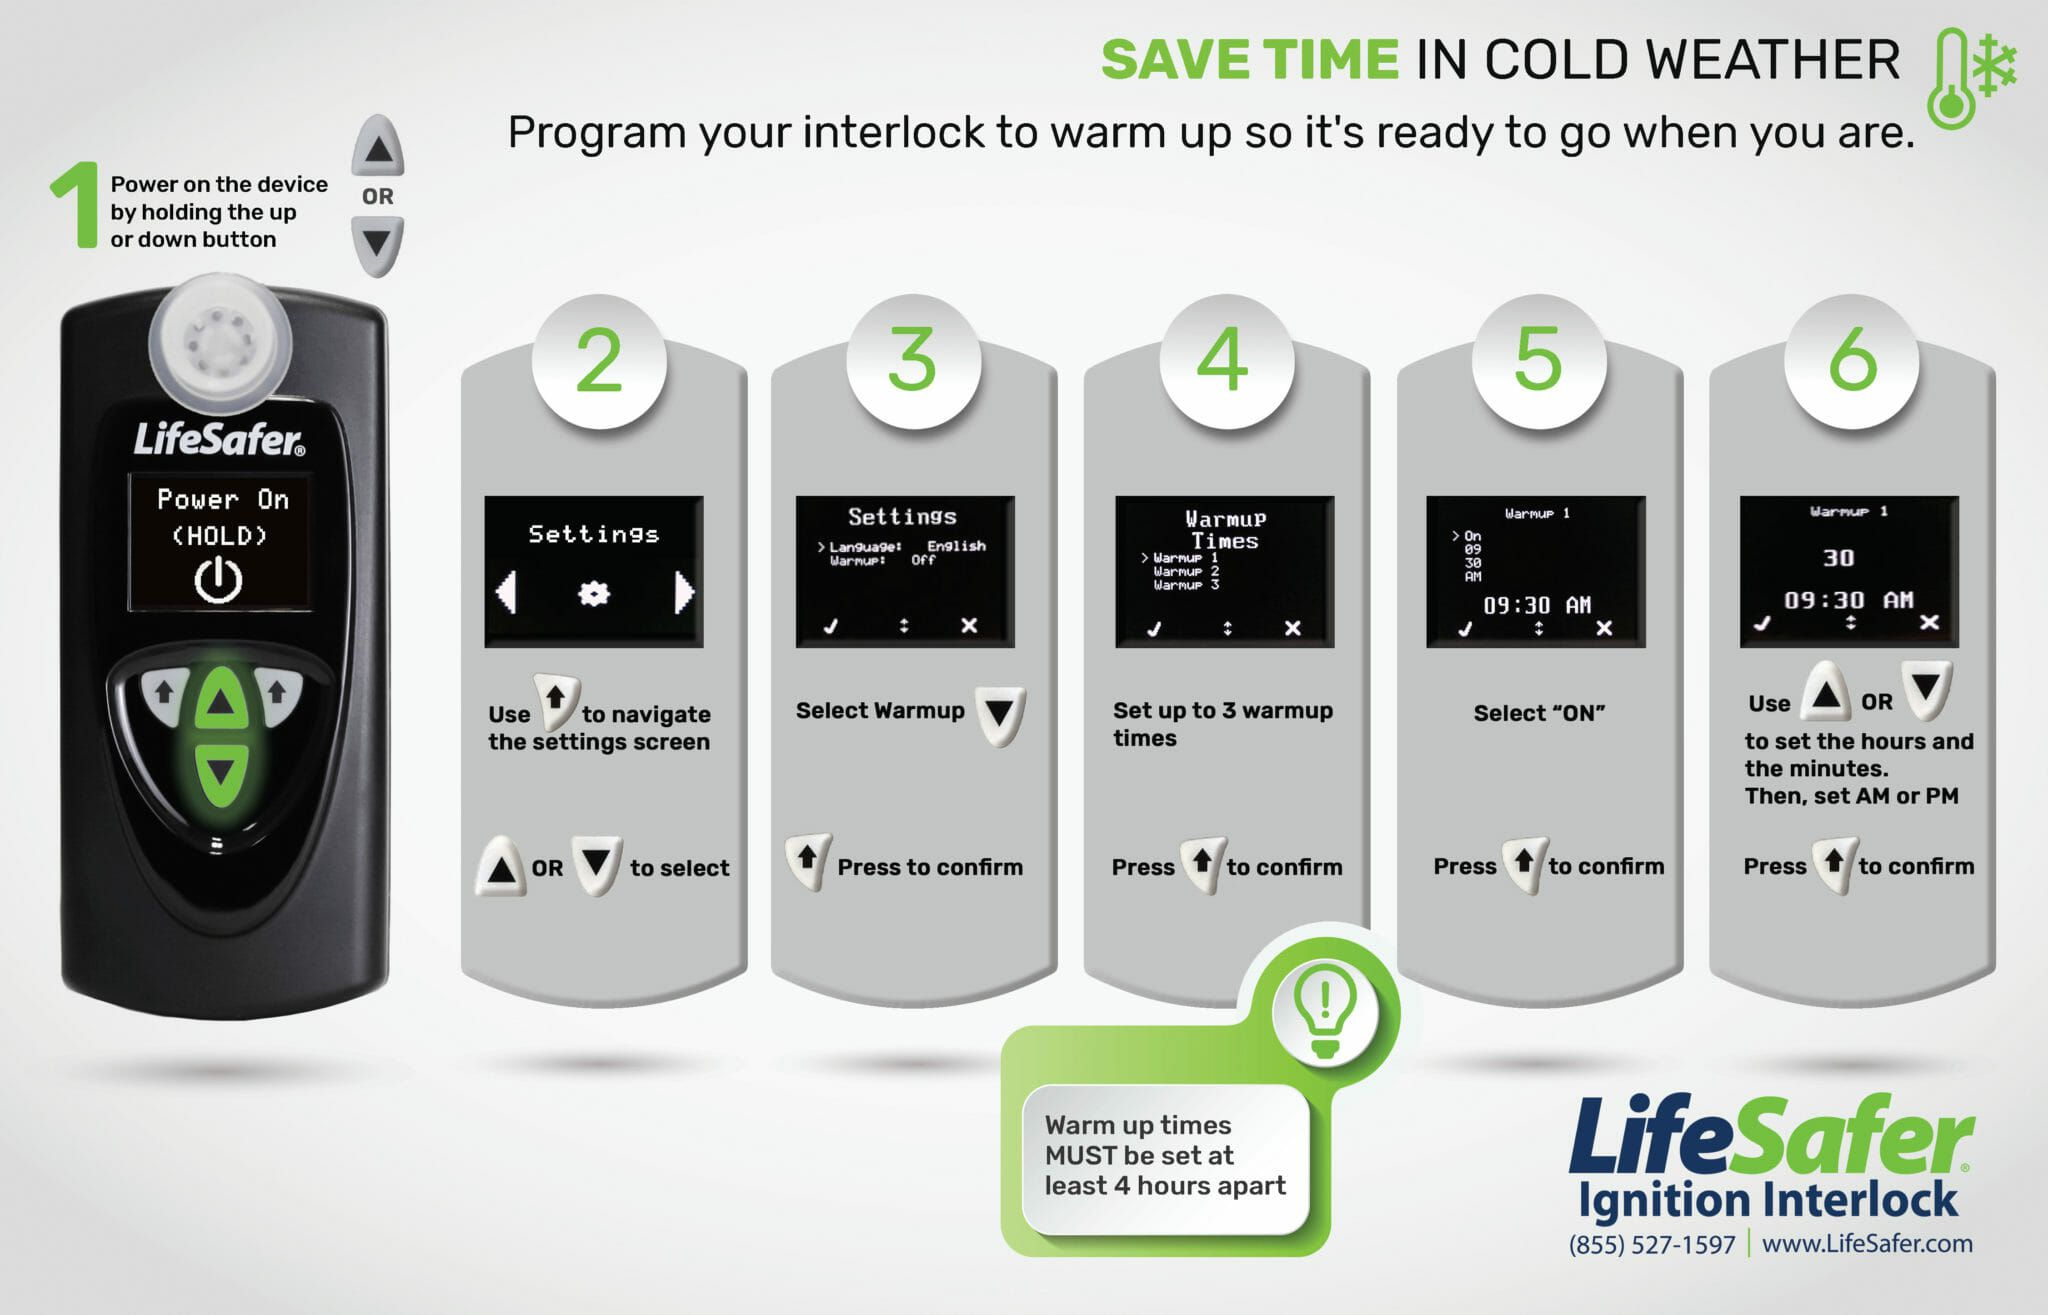 LifeSafer Ignition Interlock Warm Up Times Graphic Step by Step